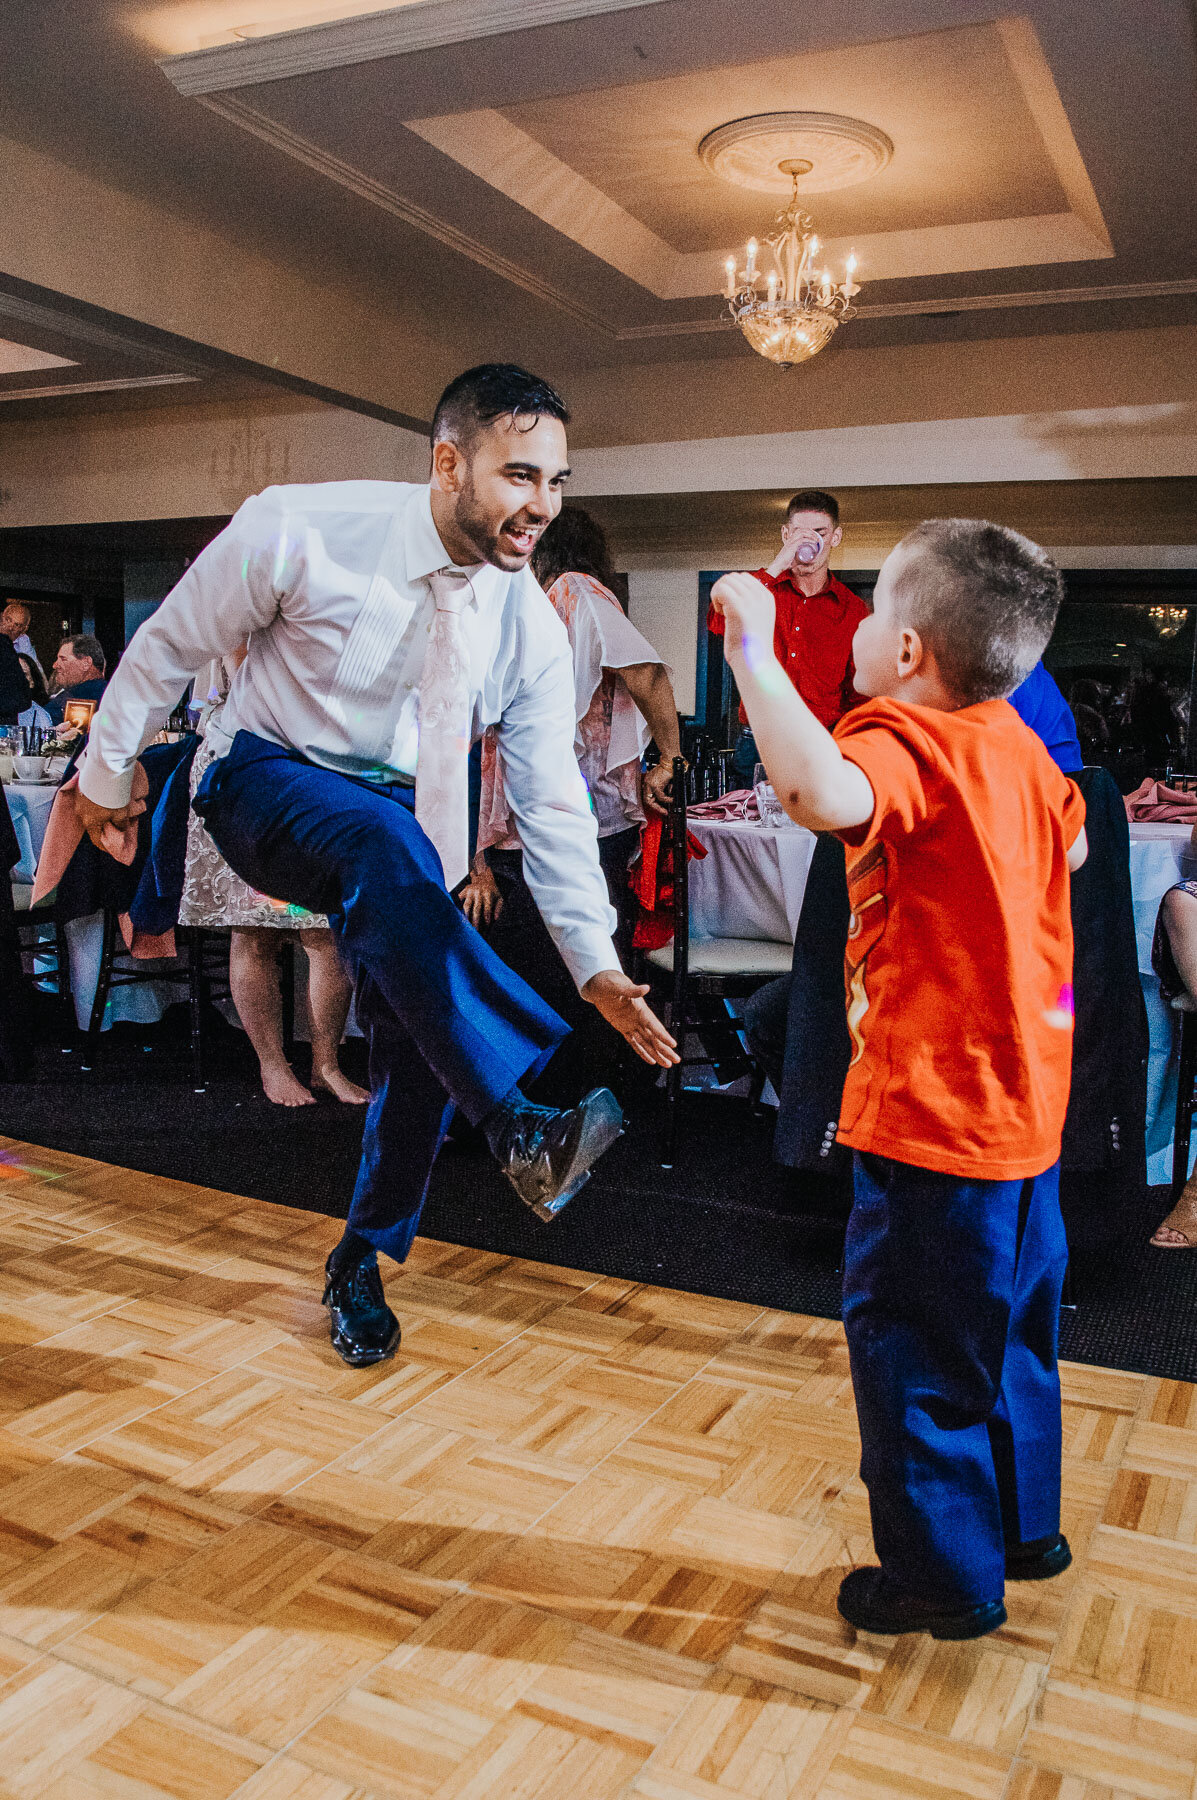 Lindsay's son having a dance off with a fellow guest at Latitudes on the River